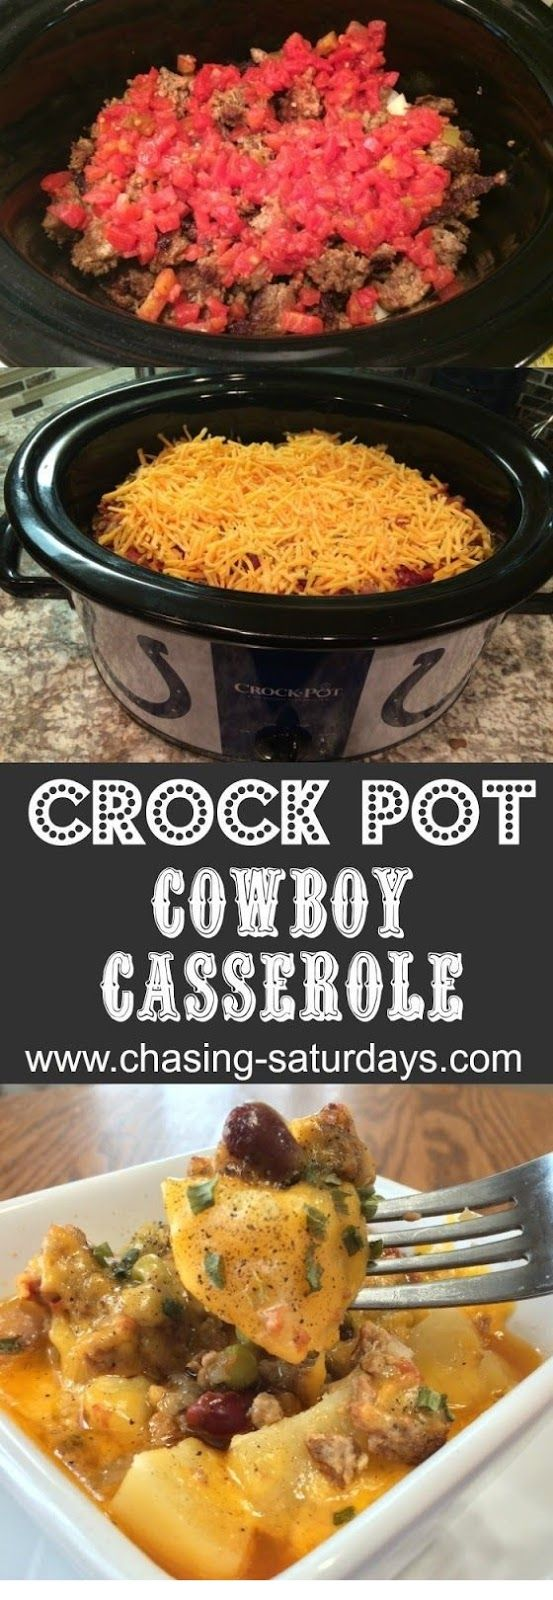 CROCKPOT | CROCK POT COWBOY CASSEROLE is Tasty and Yumm!!! Just CLICK THE LINK to SEE THE COMPLETE RECIPES and step by step instruction #crockpotchickeneasy